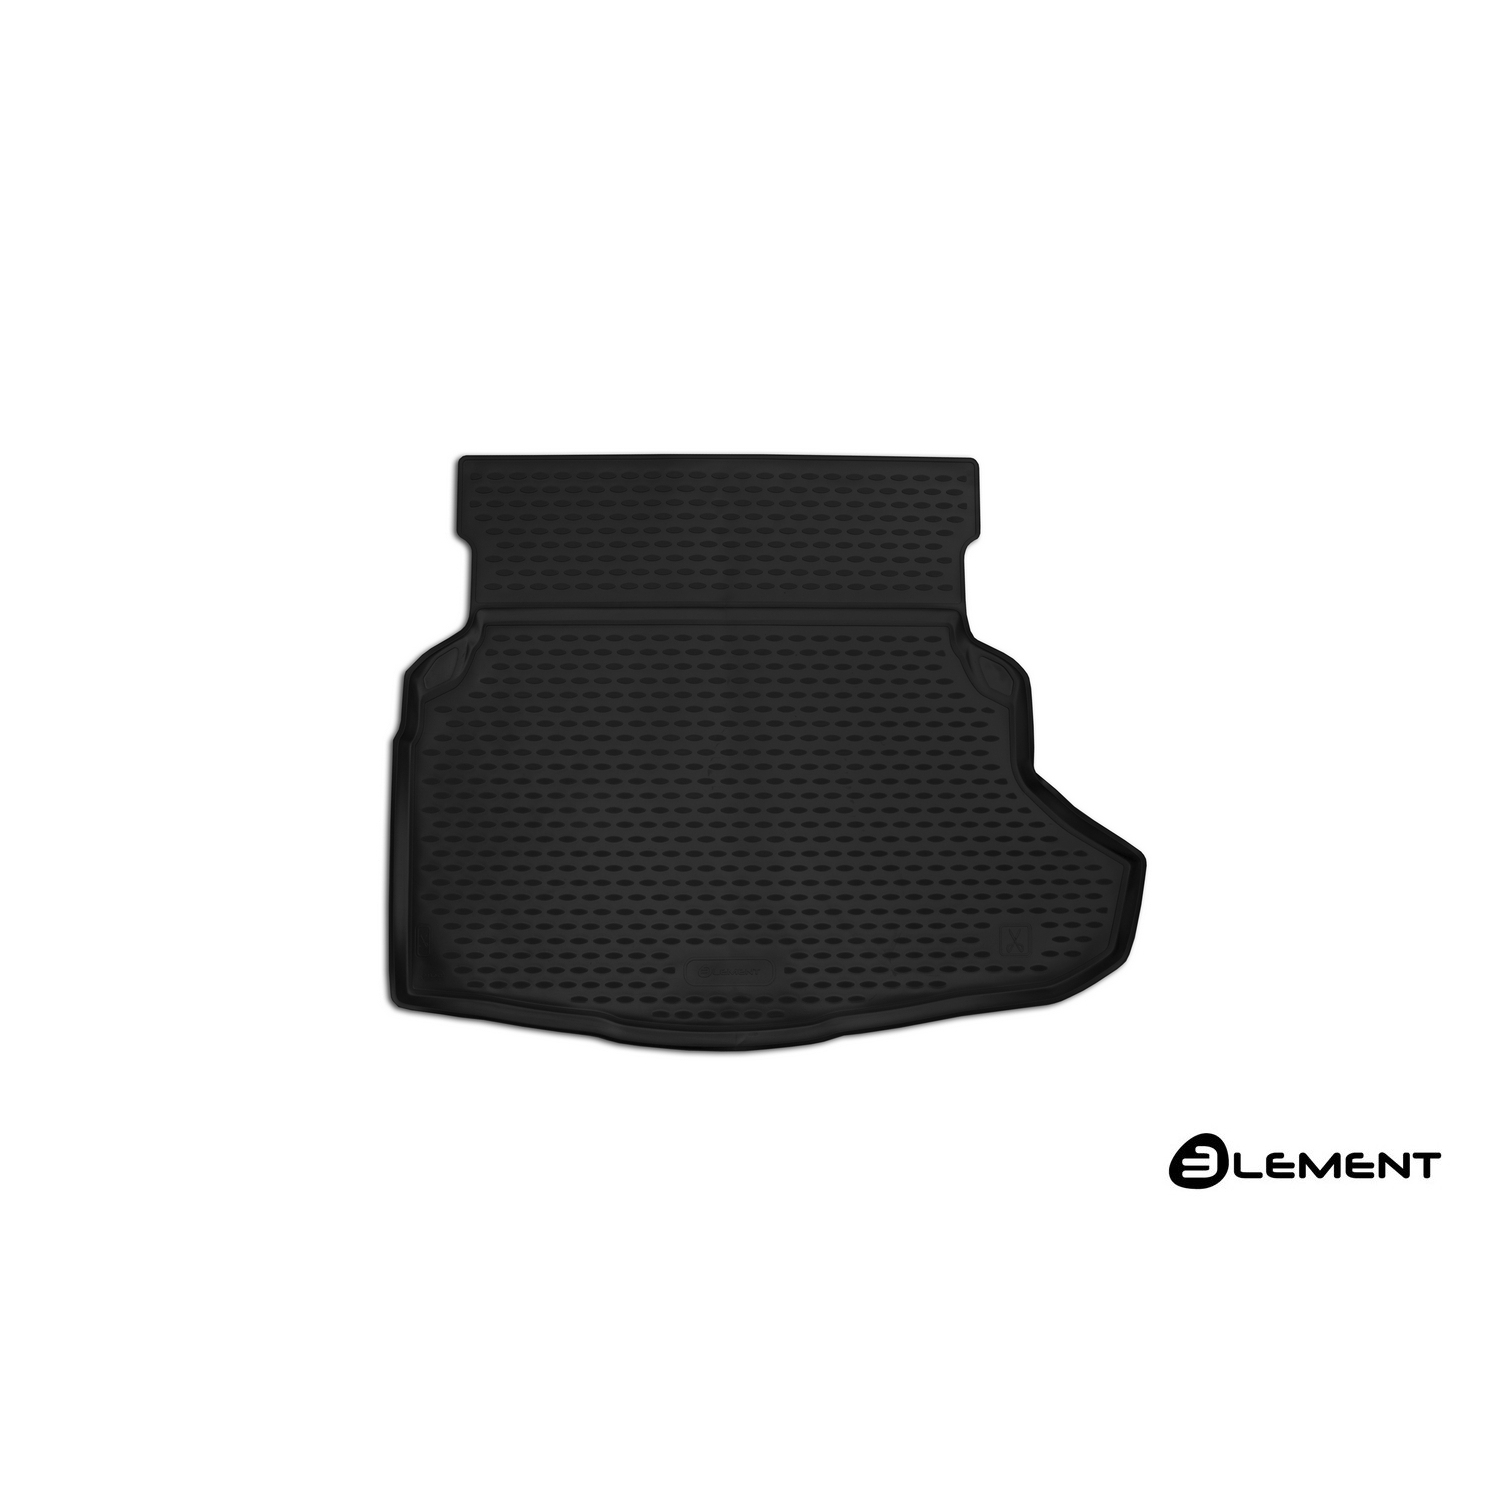 Trunk Mat For MERCEDES-BENZ C-Class IV W205), 2014, ETS. 1 PCs ELEMENT3453B10